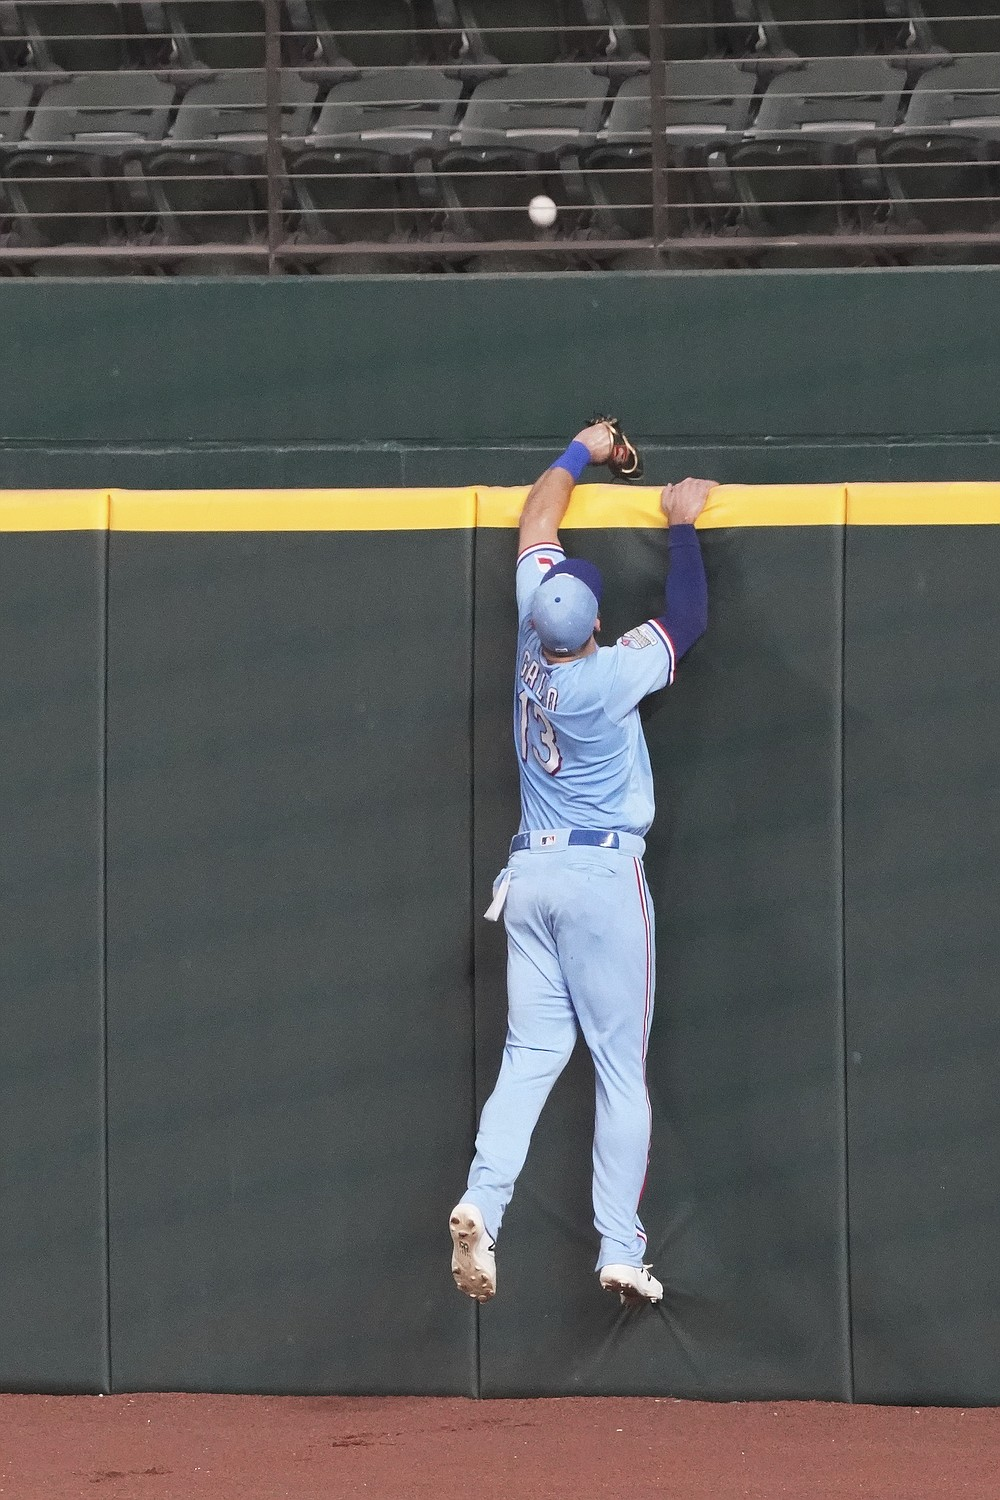 Texas Rangers right fielder Joey Gallo leaps at the wall but cannot reach a home run by Colorado Rockies' Trevor Story in the fourth inning of a baseball game Sunday, July 26, 2020, in Arlington, Texas. (AP Photo/Louis DeLuca)